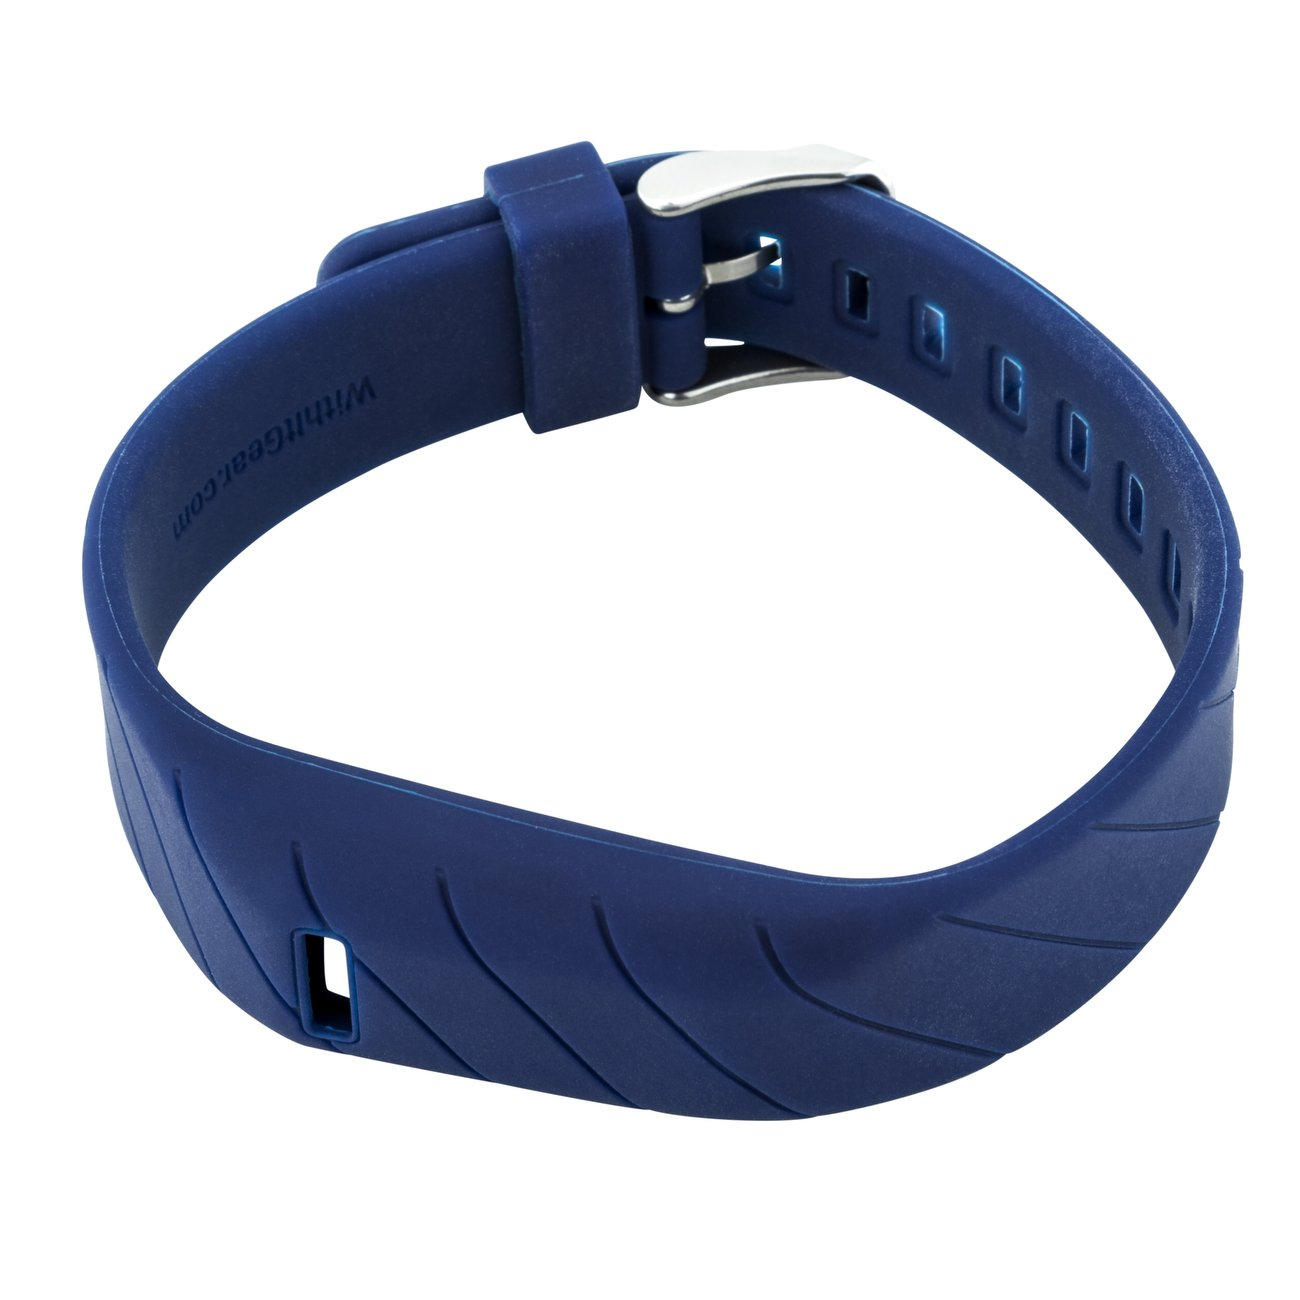 WITHit Fitbit Flex Wristband Replacement Image 2